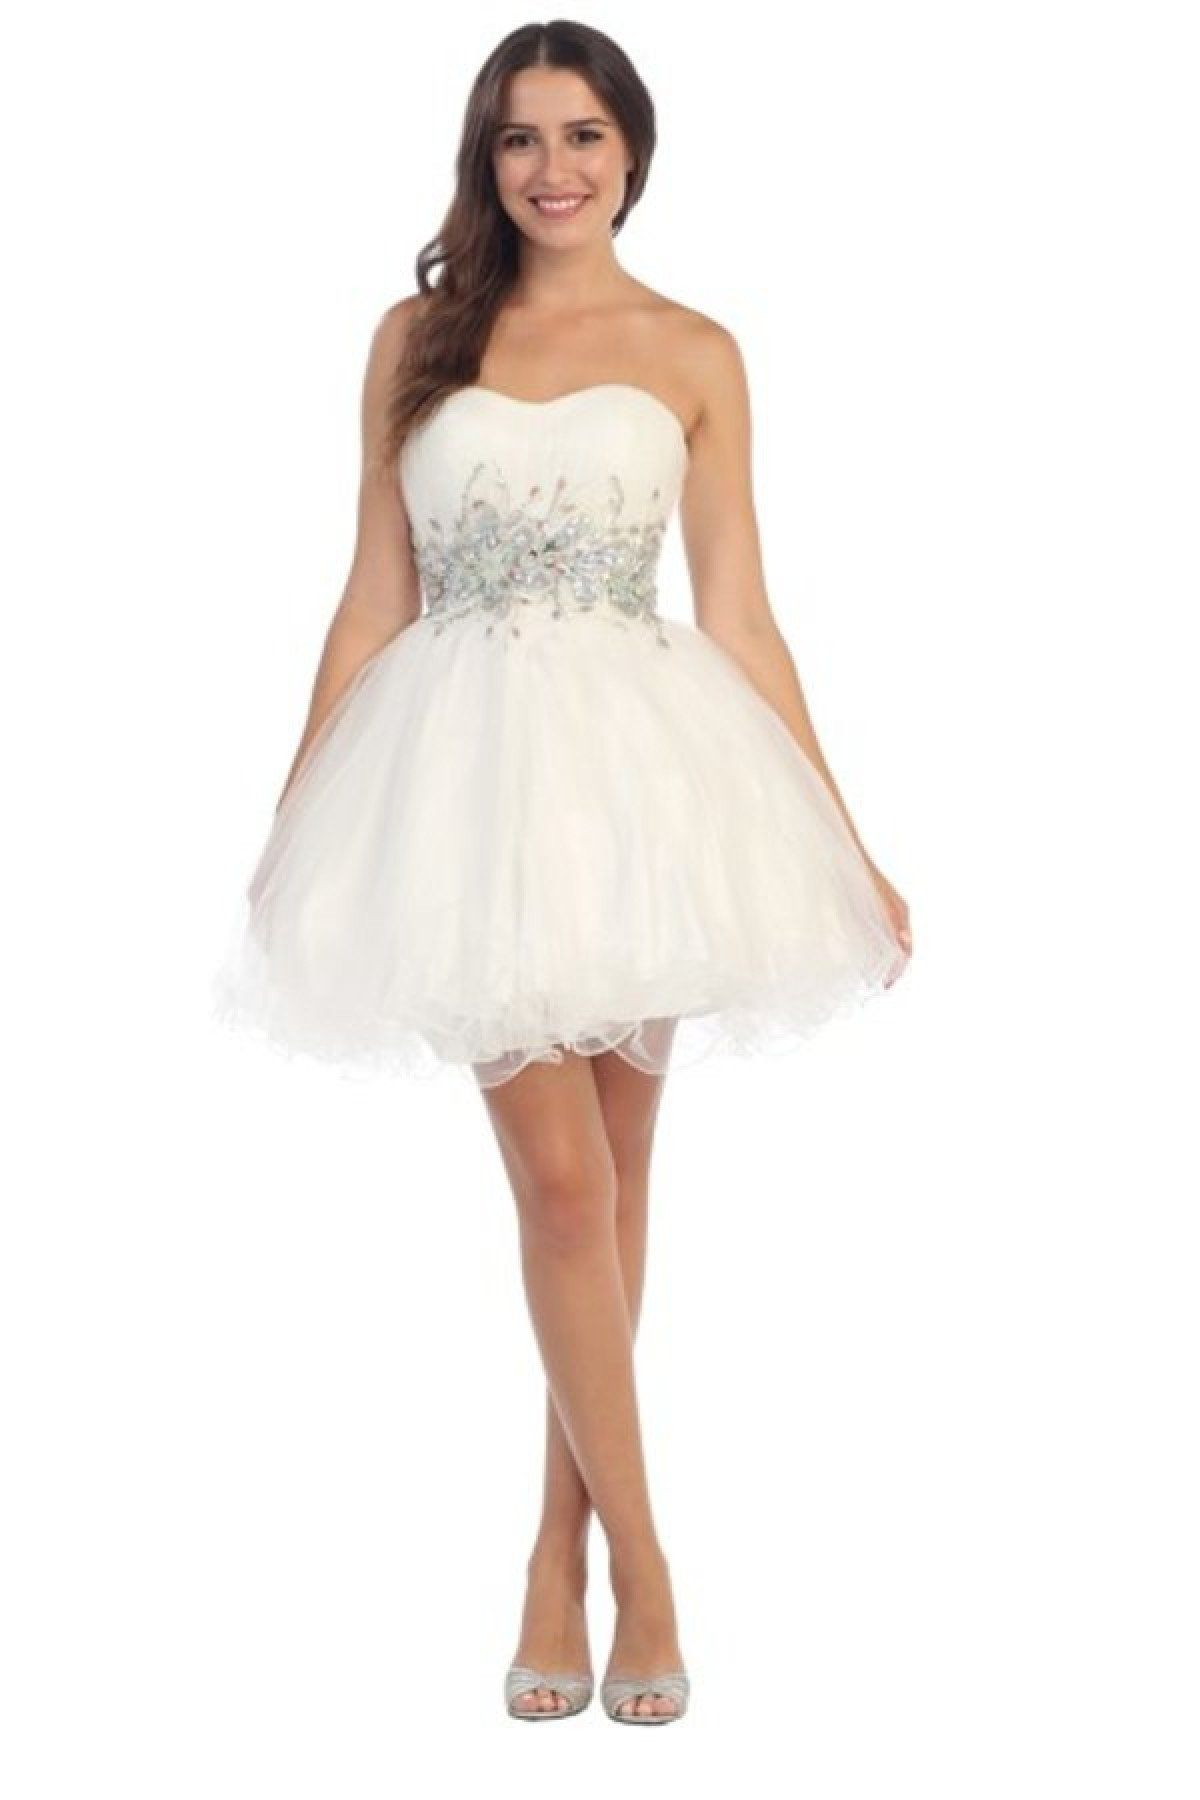 3601fe85d0dd Beaded Short Strapless Dress with Ruffled Skirt by Star Box 6057 in ...